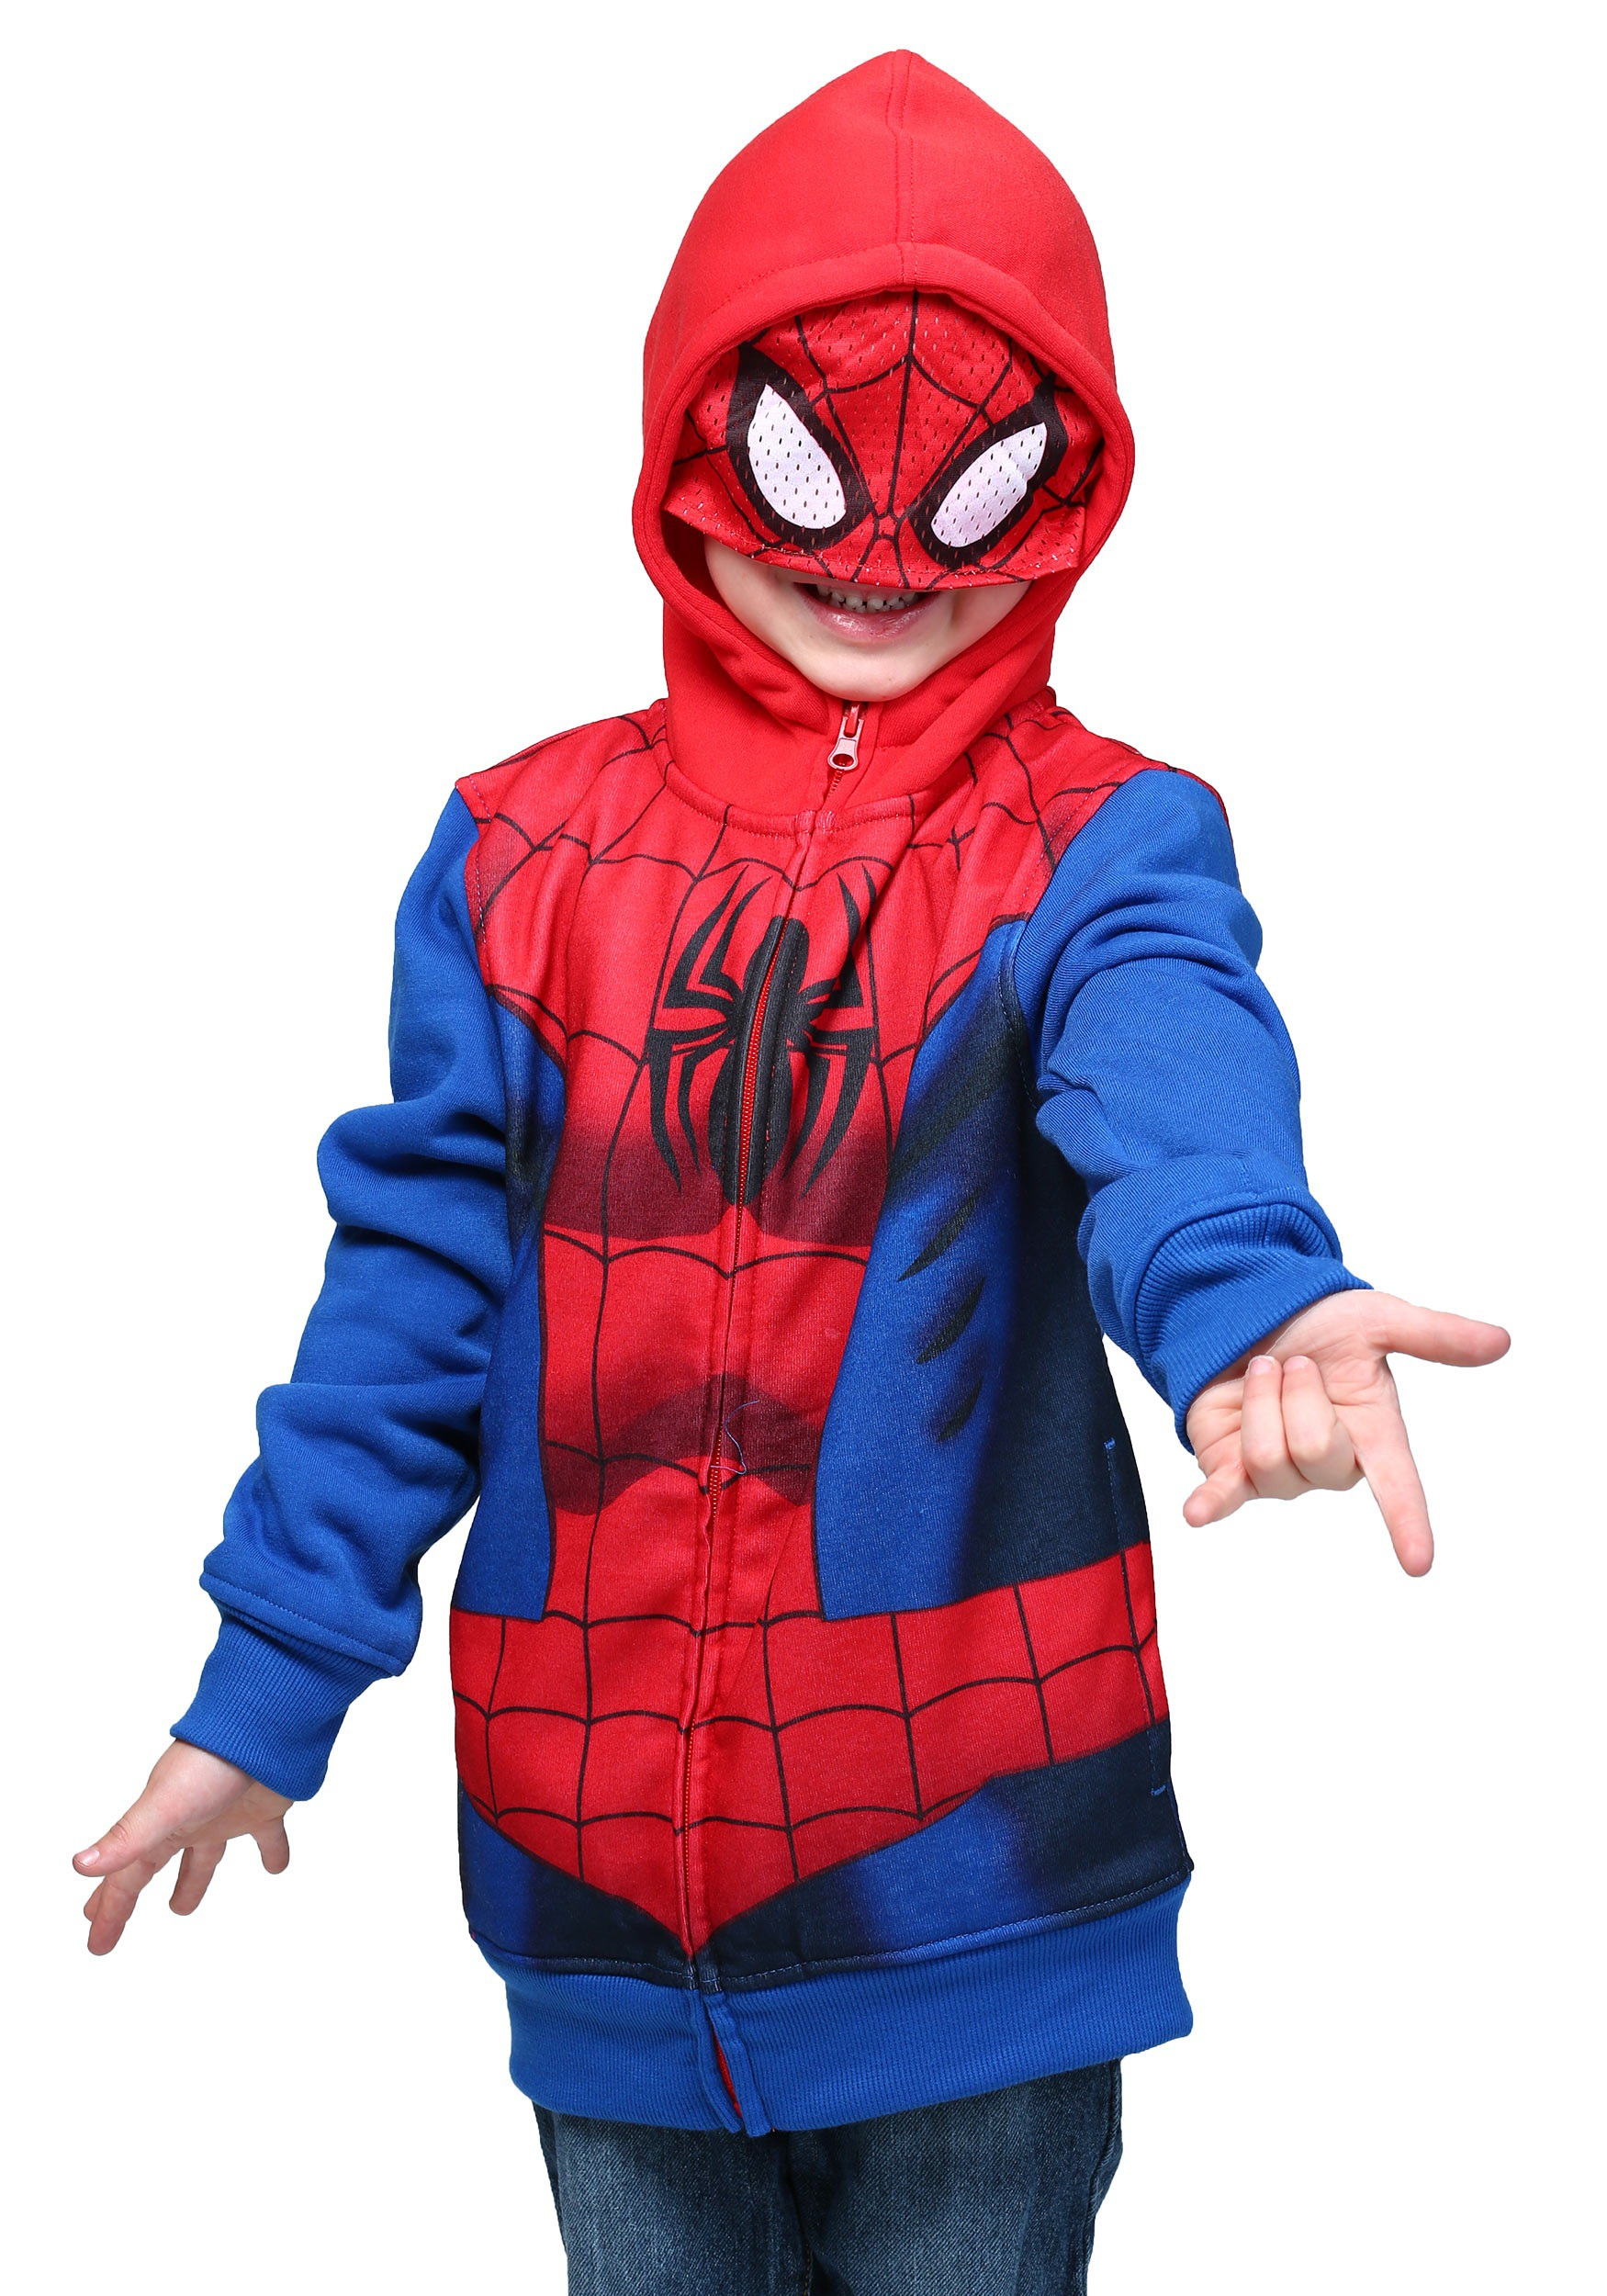 Cool Kids Spiderman Child Youth Costume Set Hoodie Pants Halloween cosplay Spider man marvel Cheap kids boy, Buy Quality spiderman children directly from China boys kids Suppliers: Marvel Comic Classic Spiderman Child Costume, Kids boys .